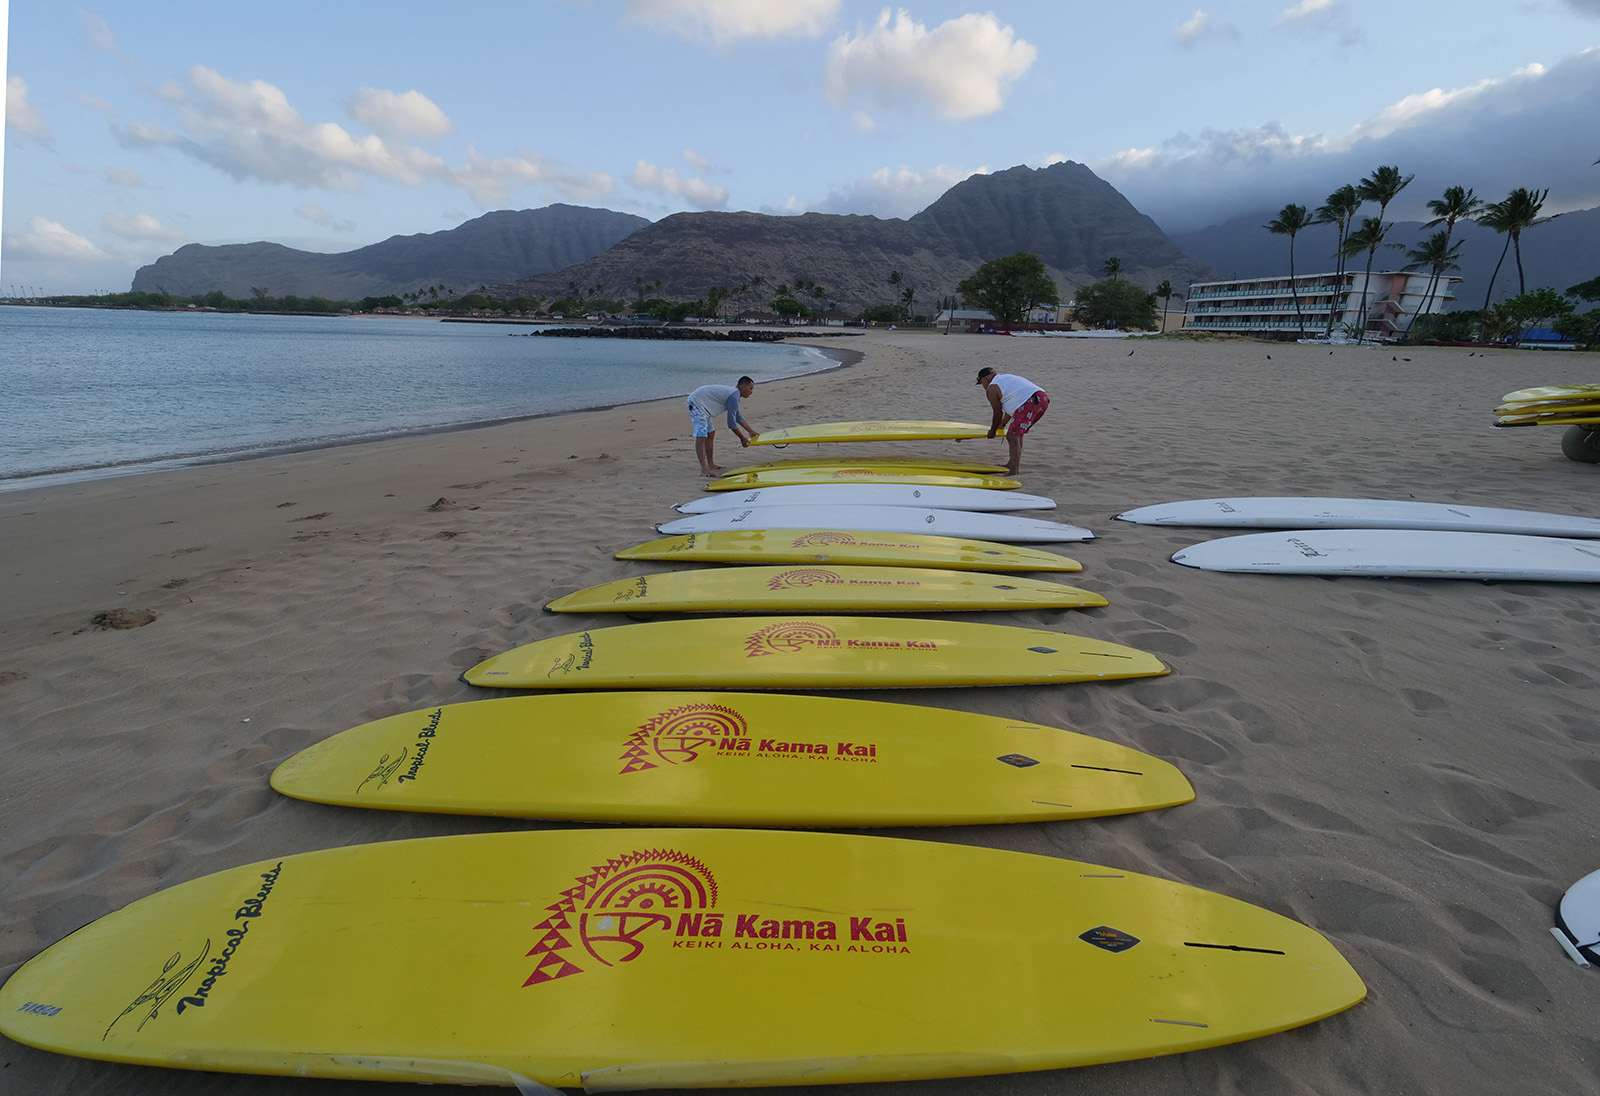 <p>Volunteers for the Na Kama Kai nonprofit organization prepare for a day of ocean safety education by laying out stand-up paddle boards at Poka&#8217;i Bay Beach Park on the Waianae coast on Saturday, April 14.</p>